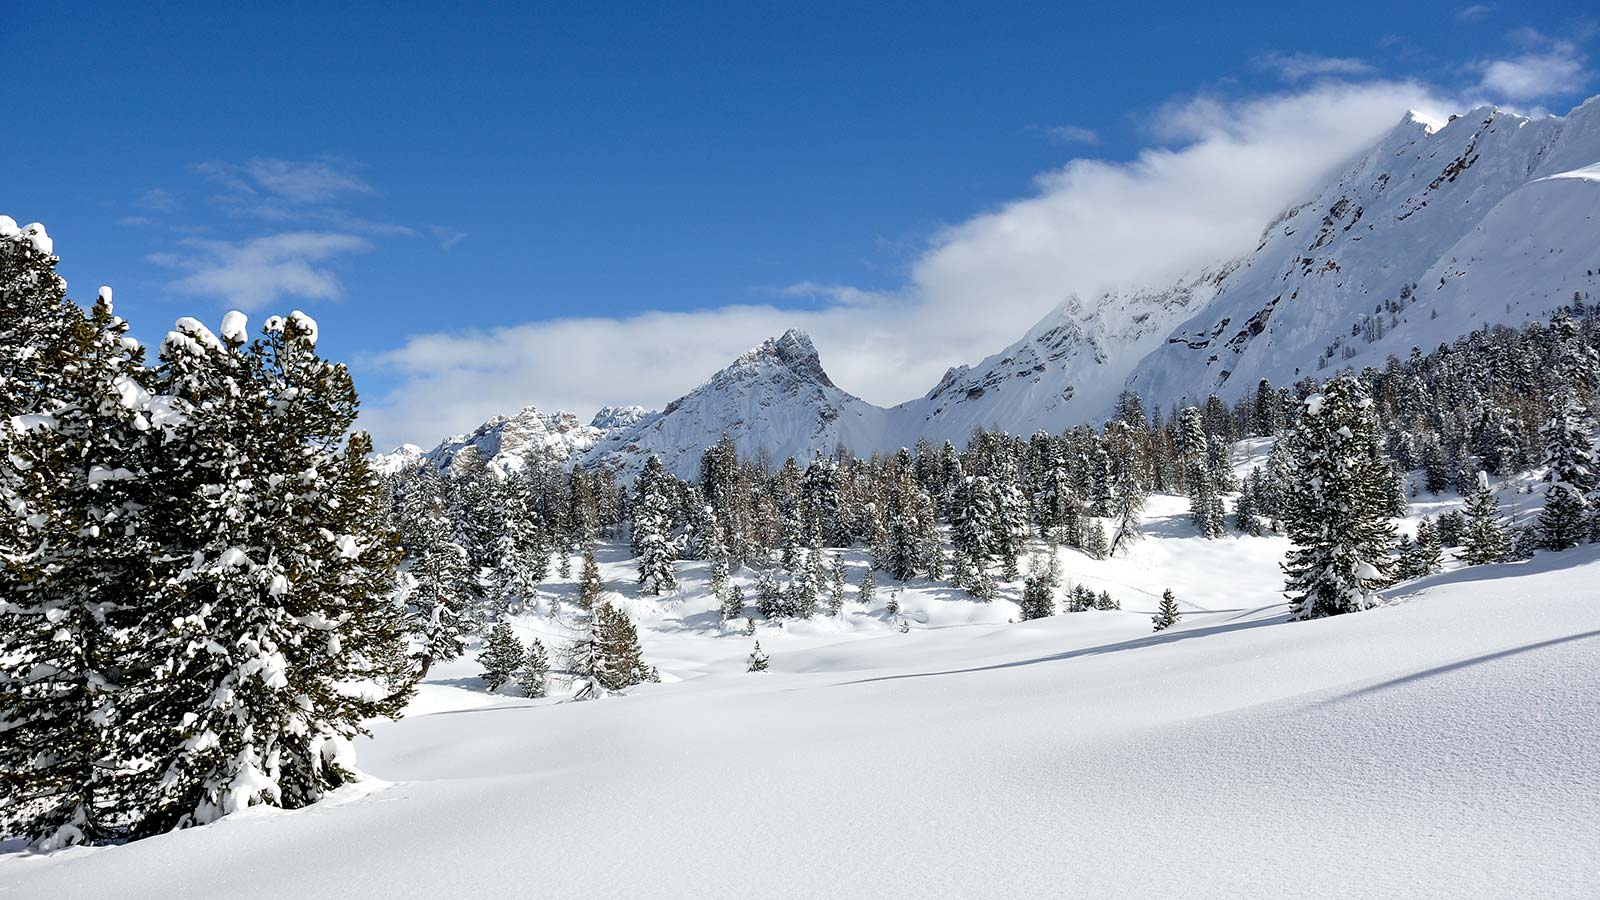 Alpine landscape with snow trees and peaks